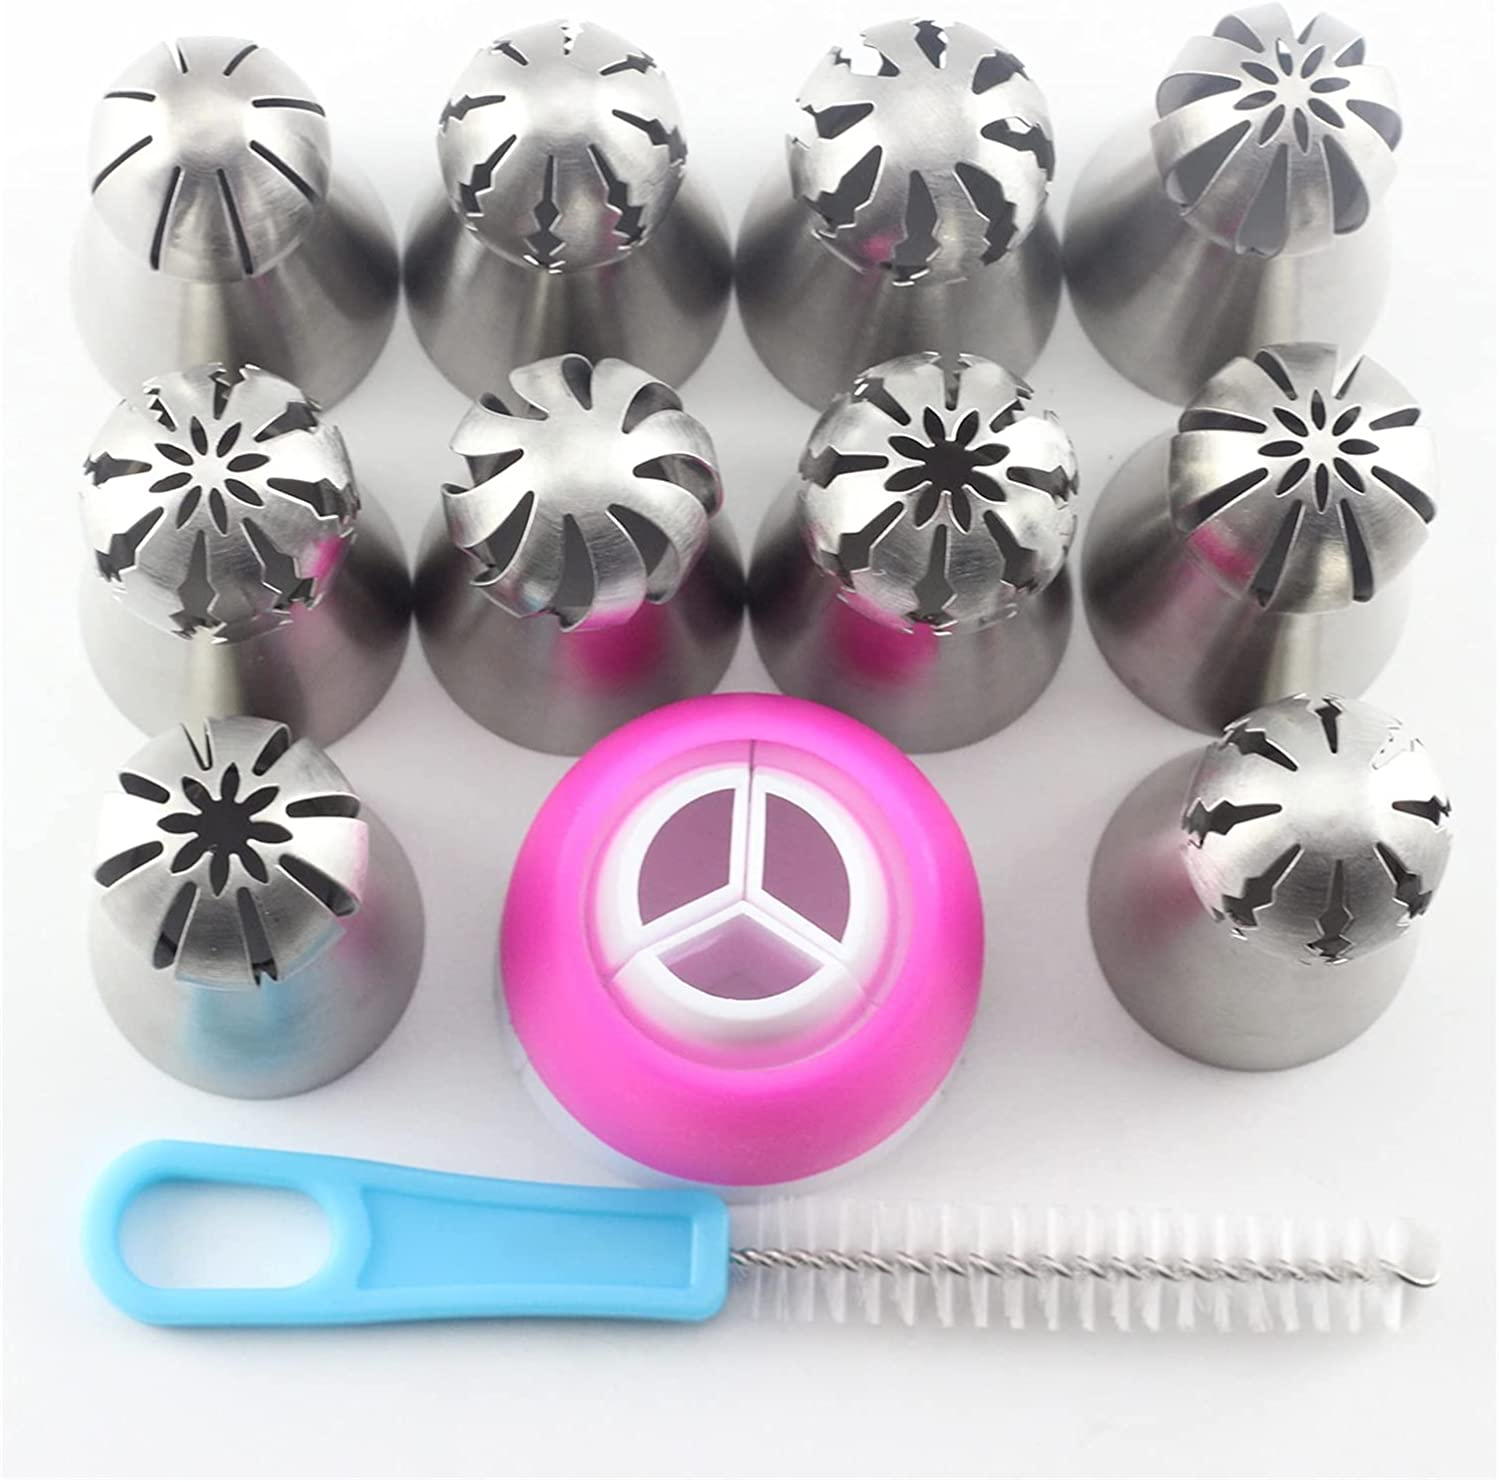 Piping Tips It is very popular 12Pcs Russian Pastry Al sold out. Sphere Ball N Icing